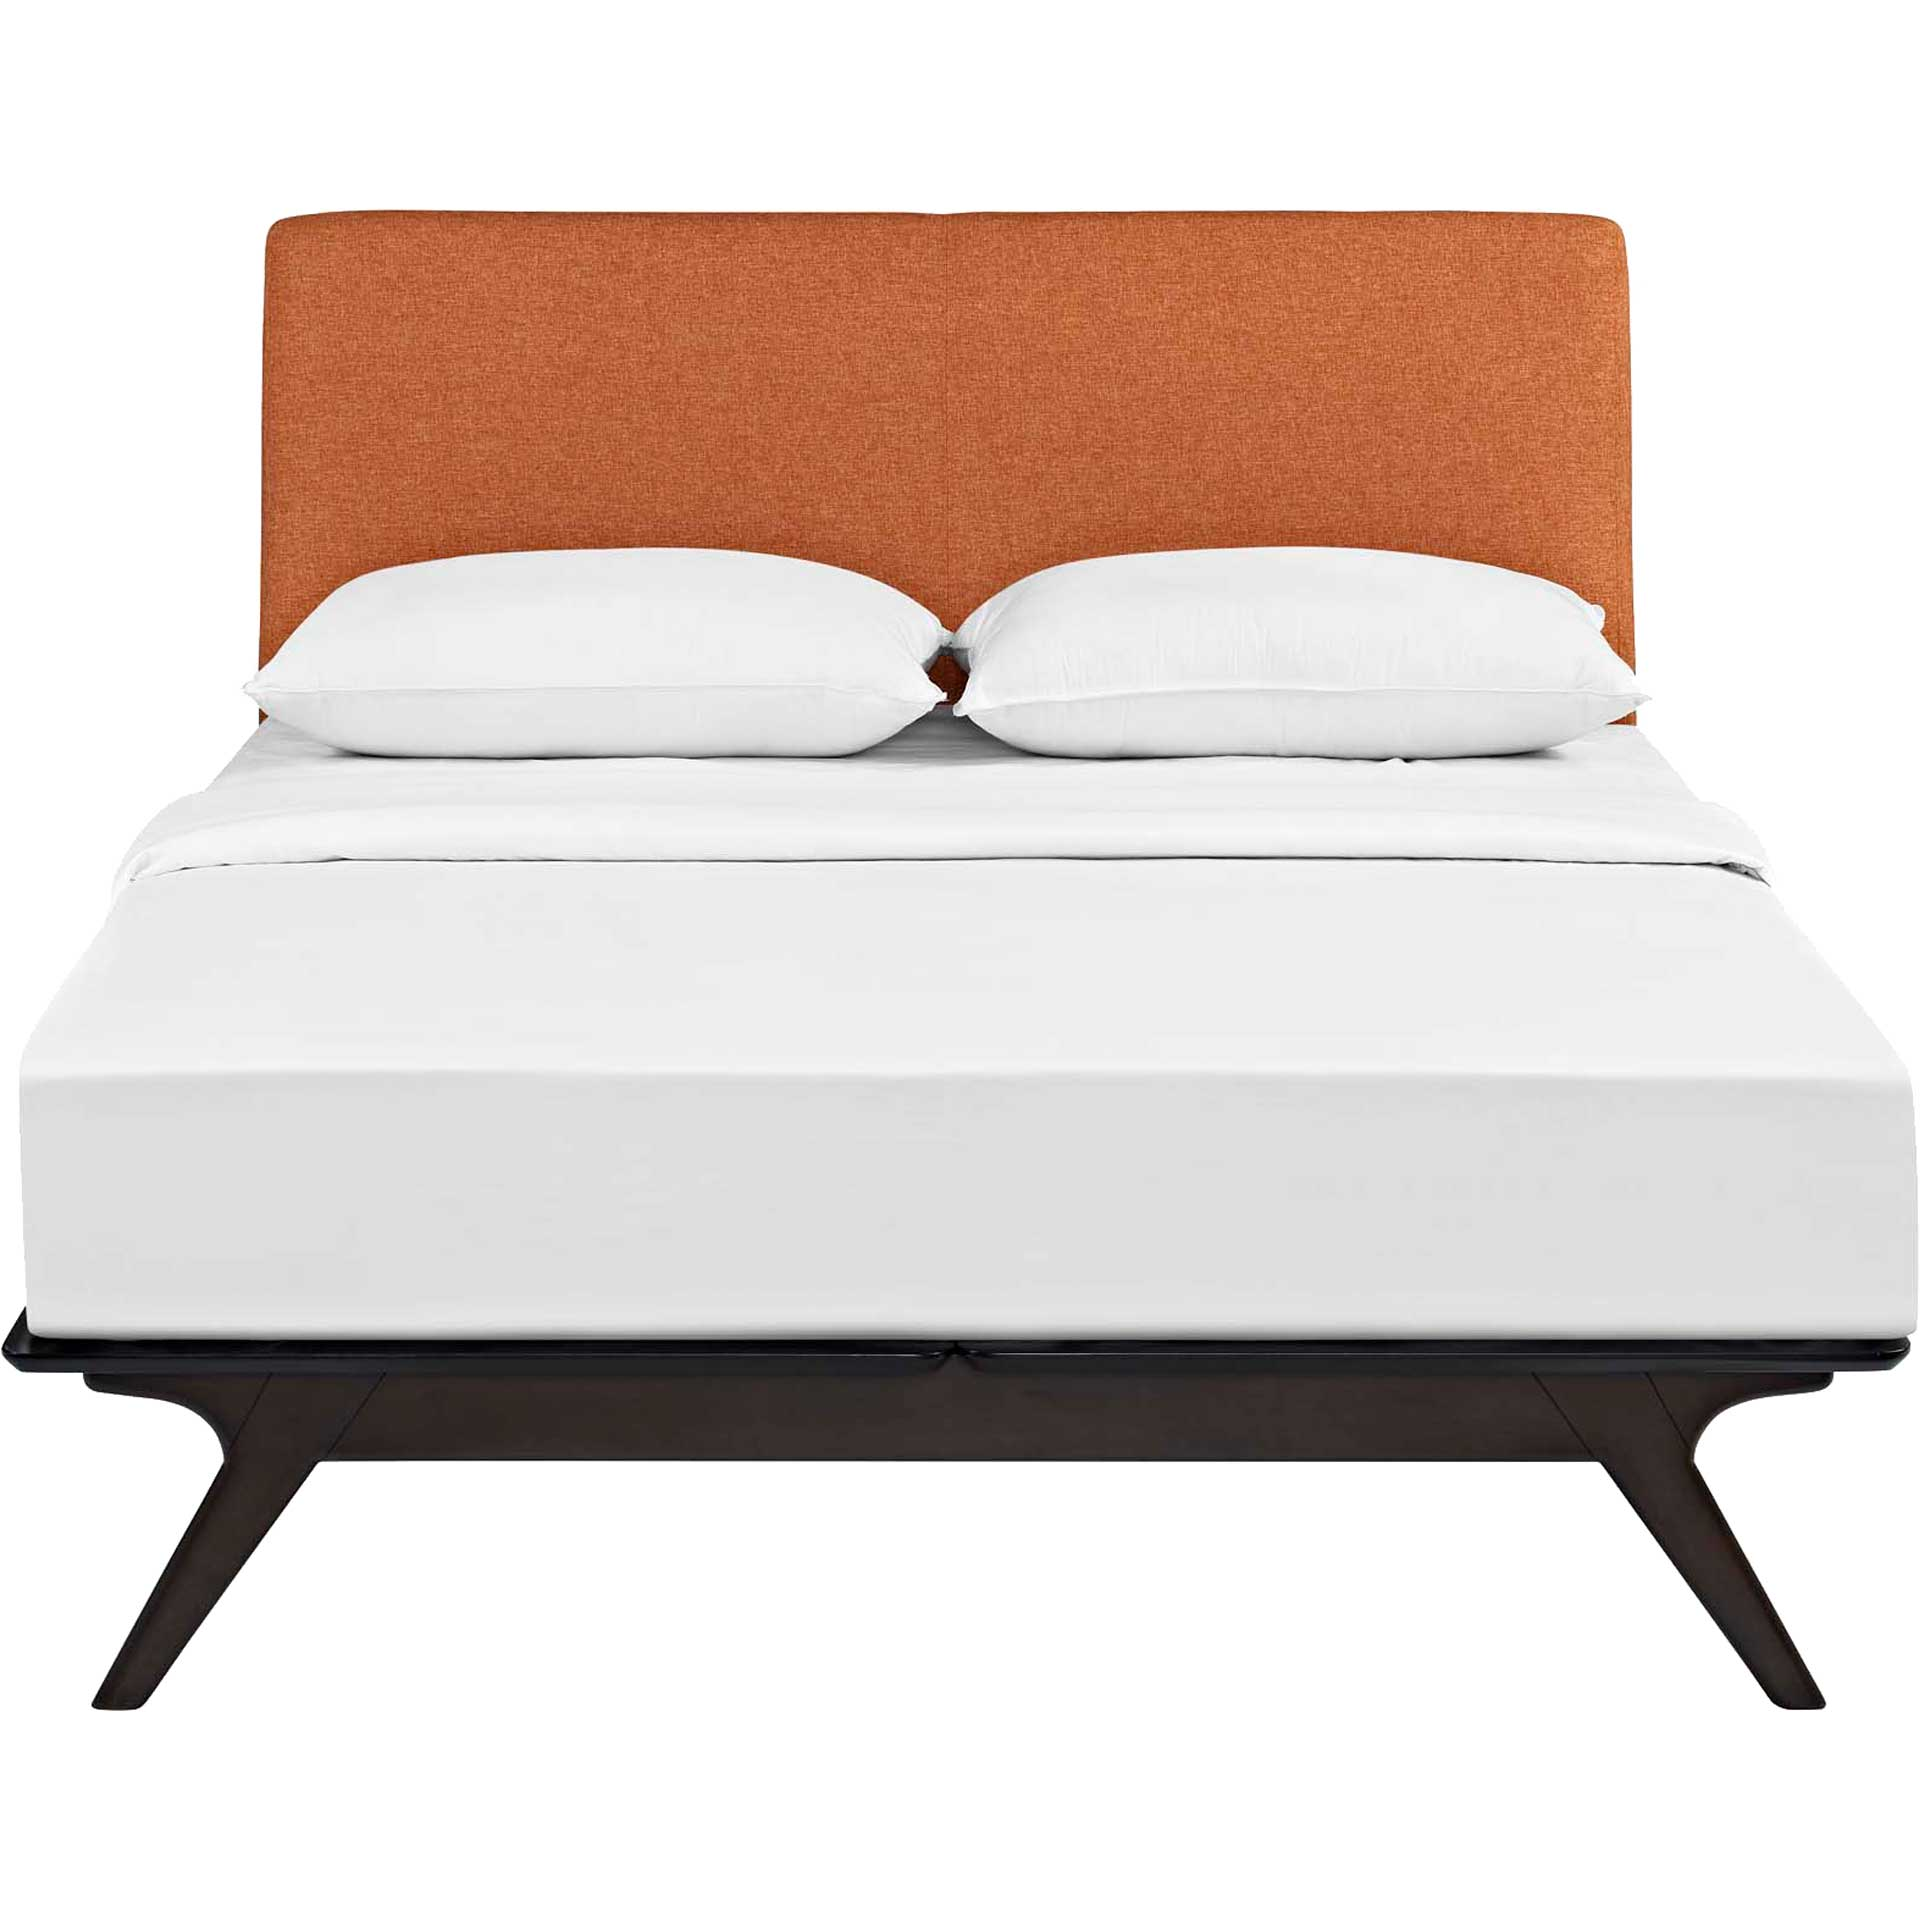 Thames Wood Bed Cappuccino/Orange